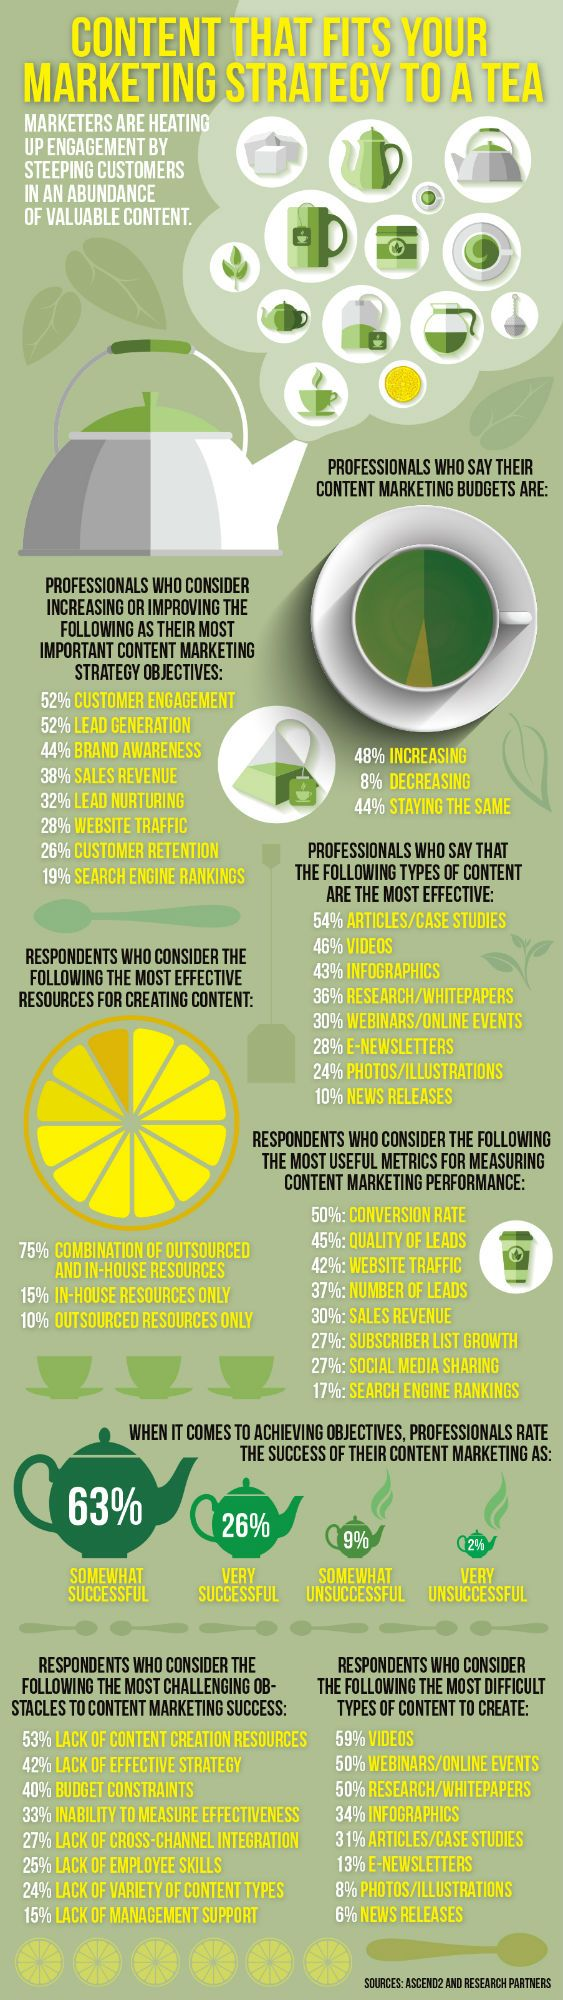 Content That Fits Your Marketing Strategy to a Tea [Infographic] - Direct Marketing News